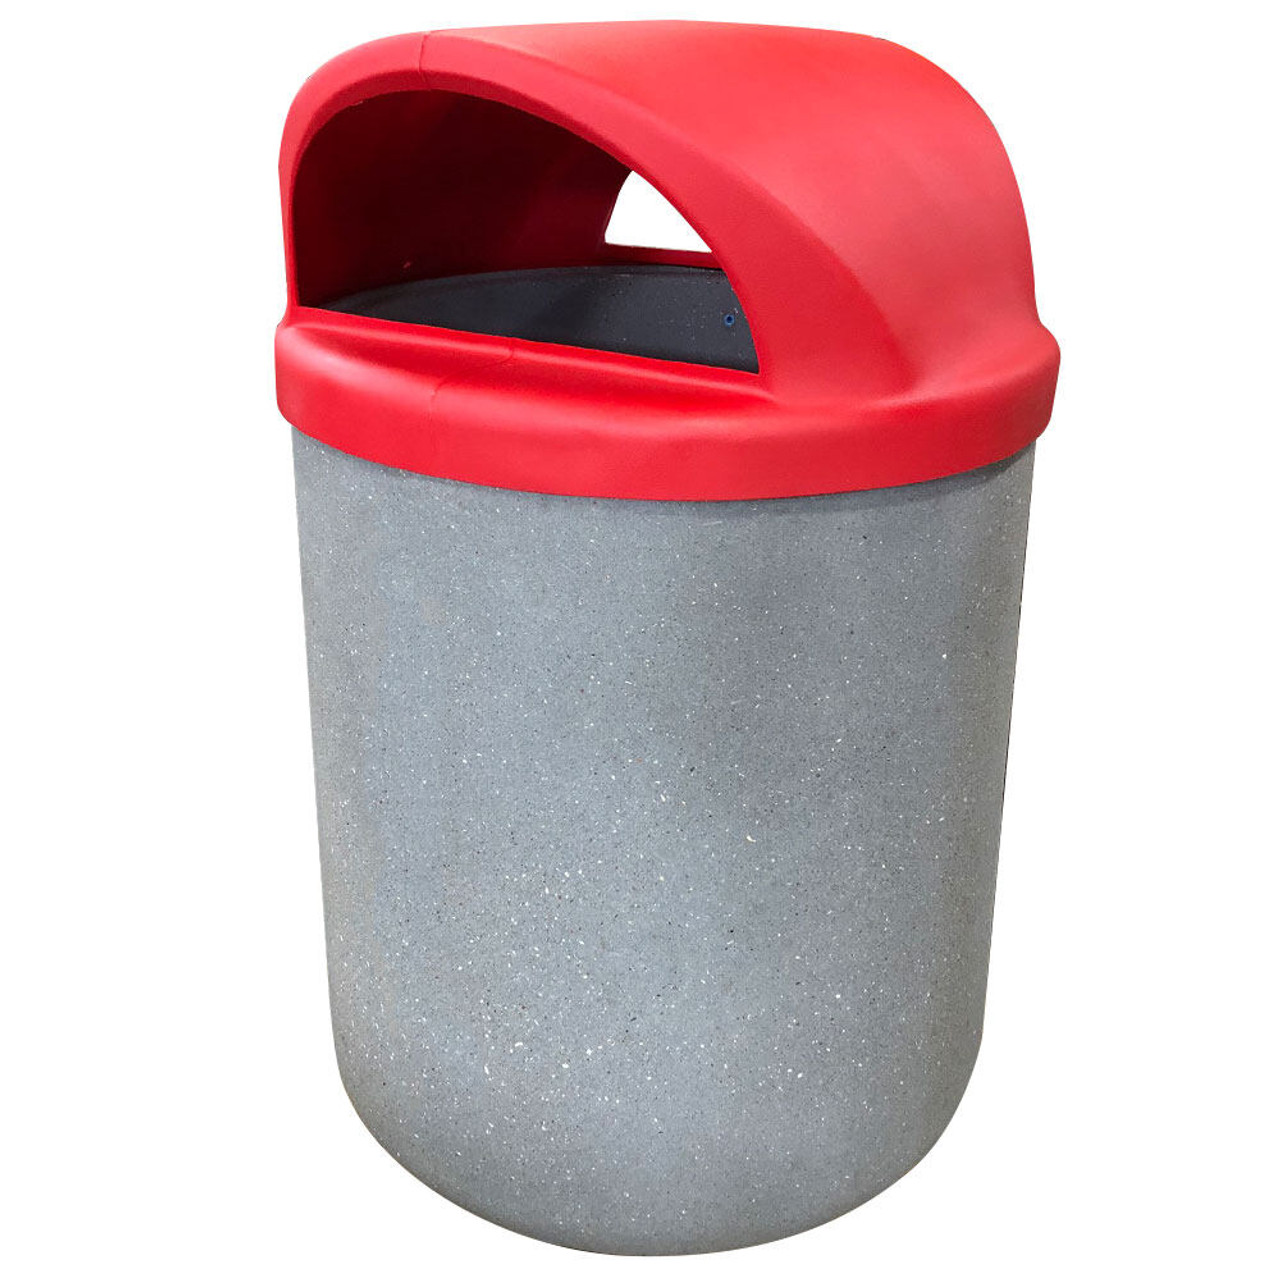 42 Gallon Concrete 2 Way Open Dome Top Outdoor Waste Container TF1165 Acid Wash